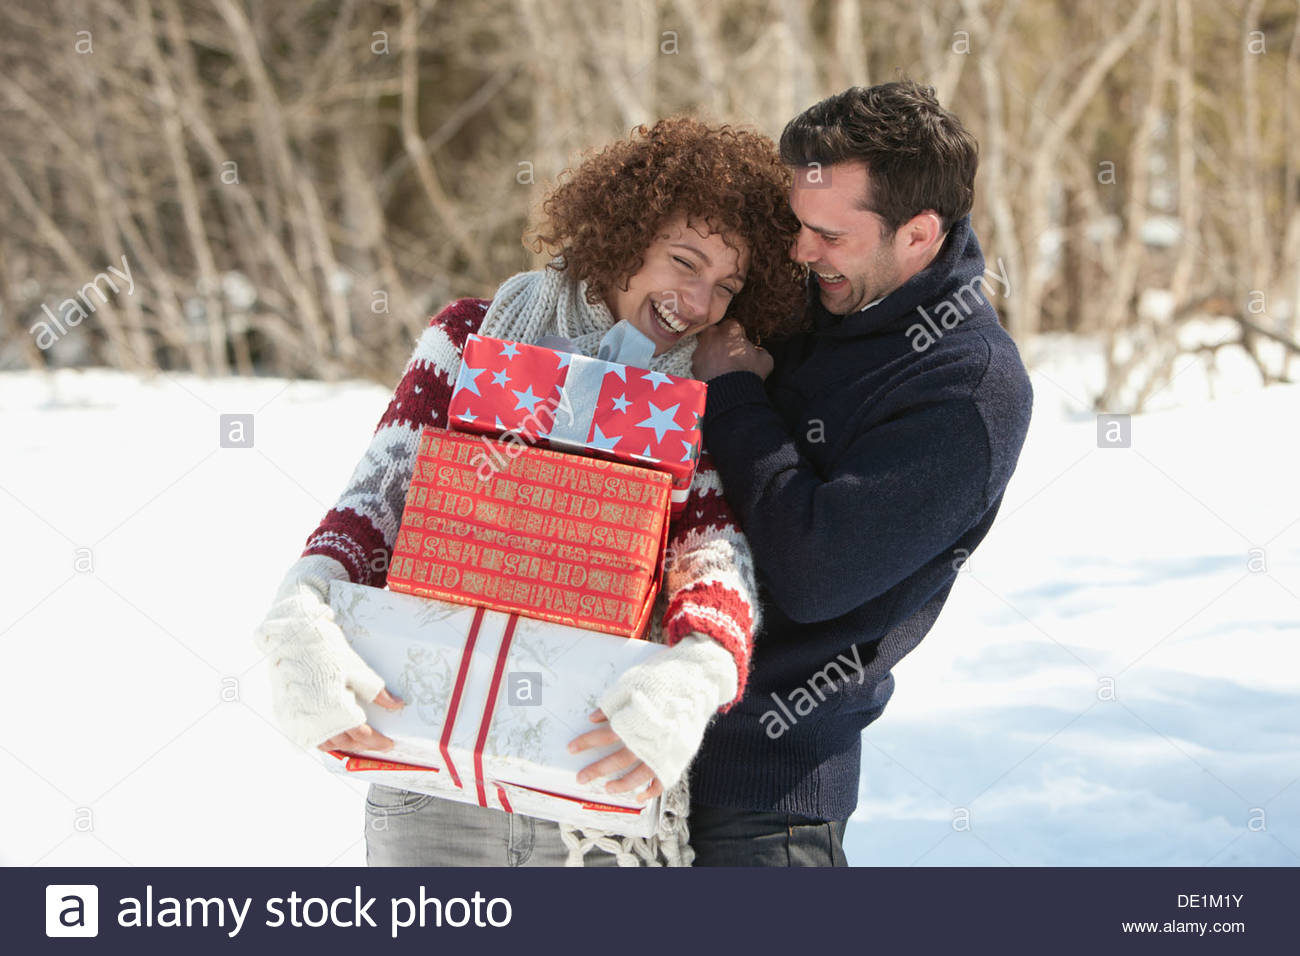 Man and woman with gifts outdoors, winter Stock Photo